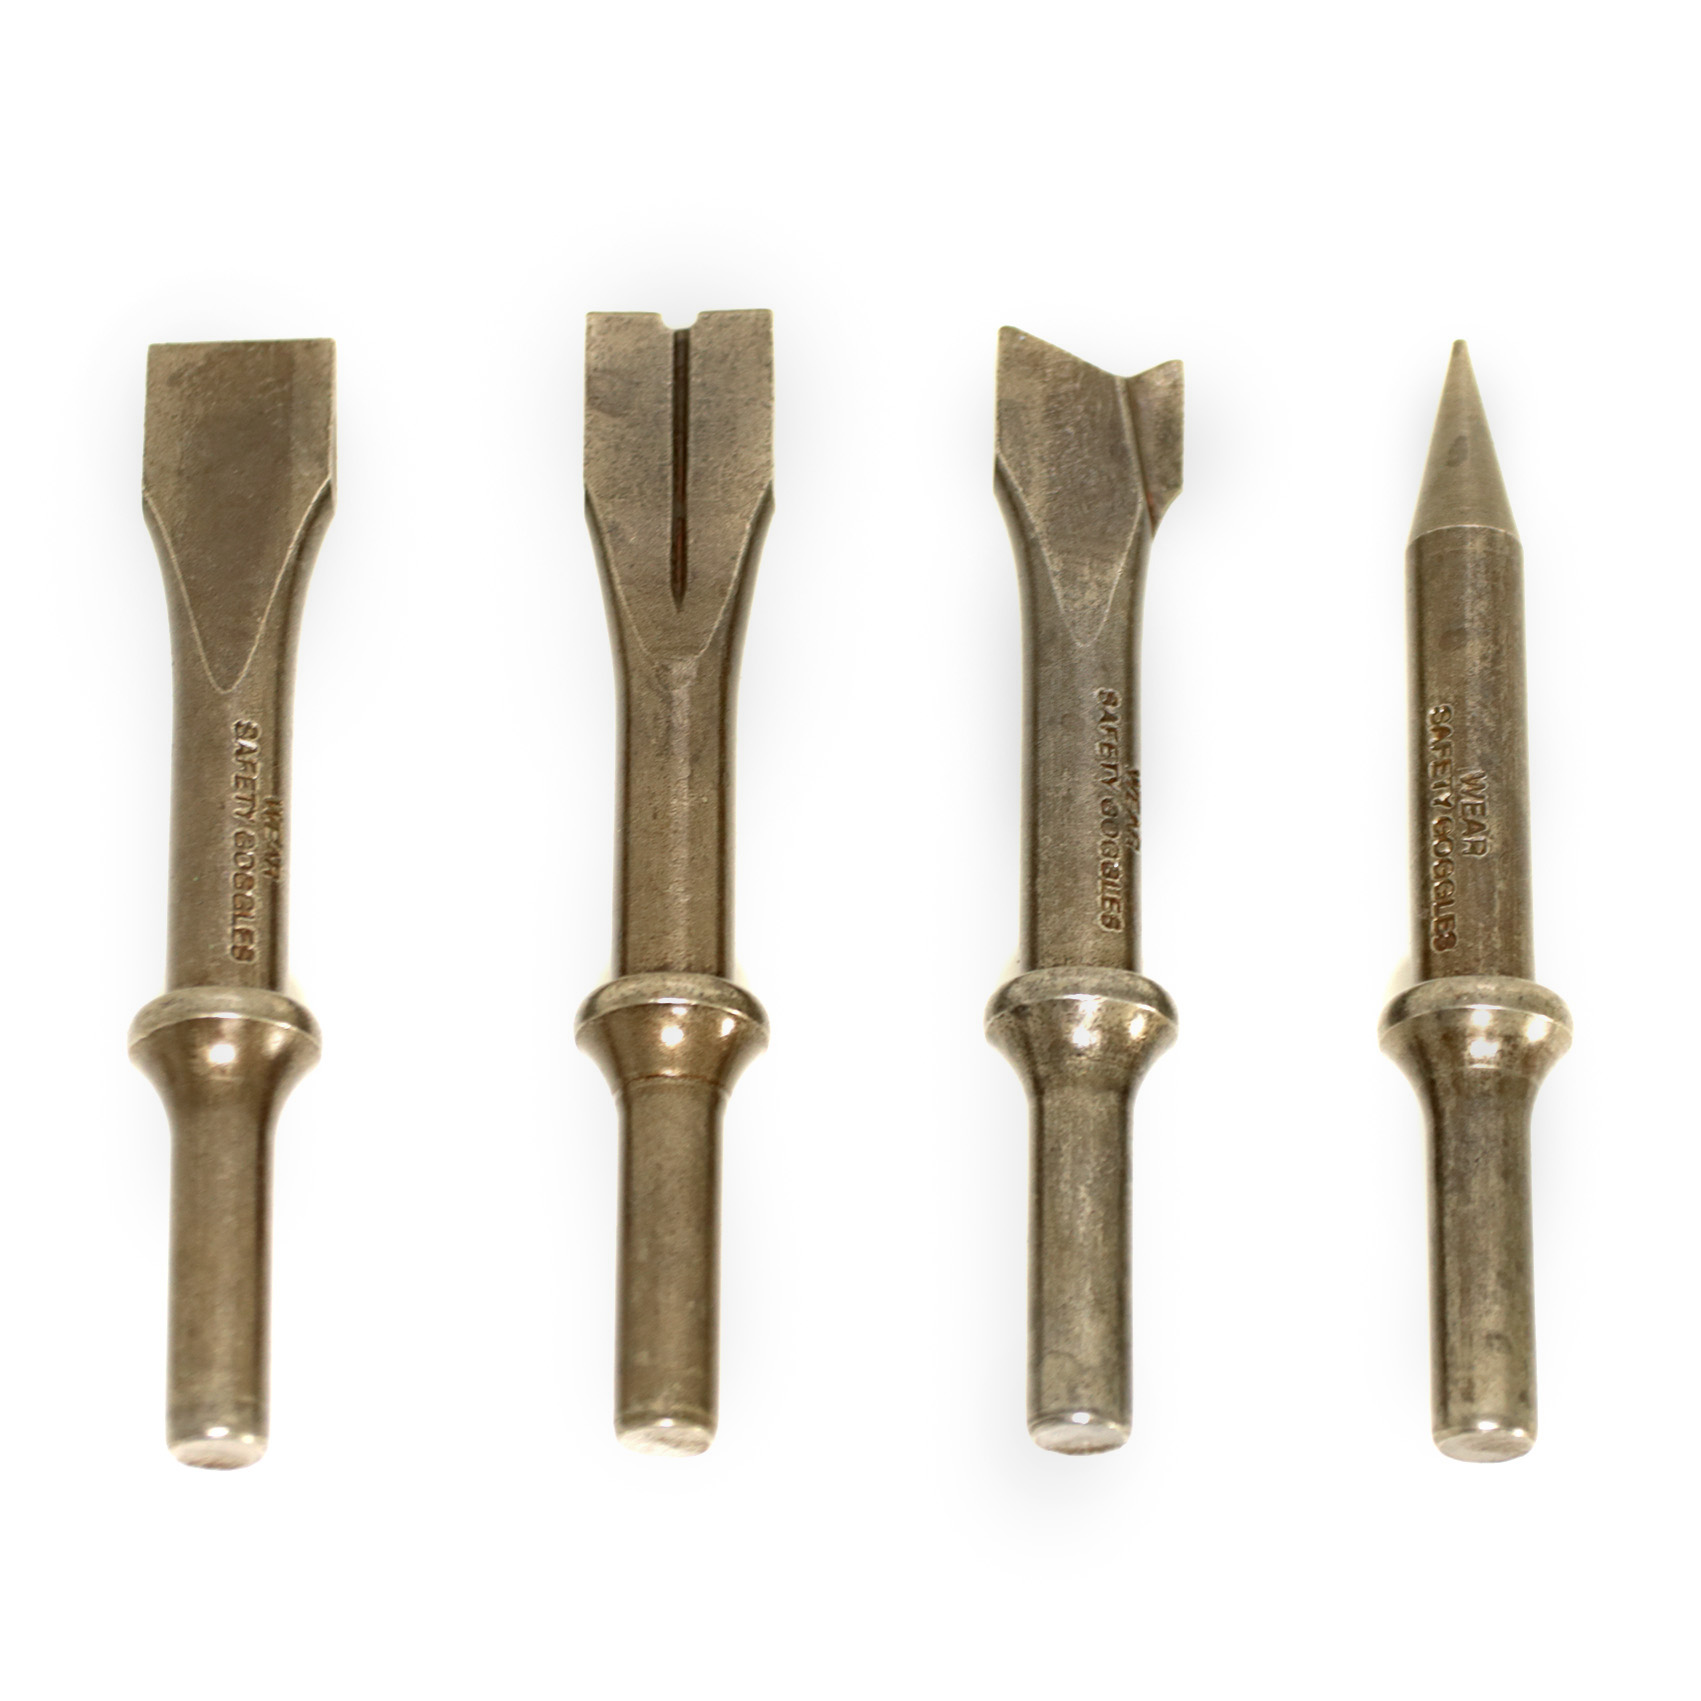 Hammer Chisels